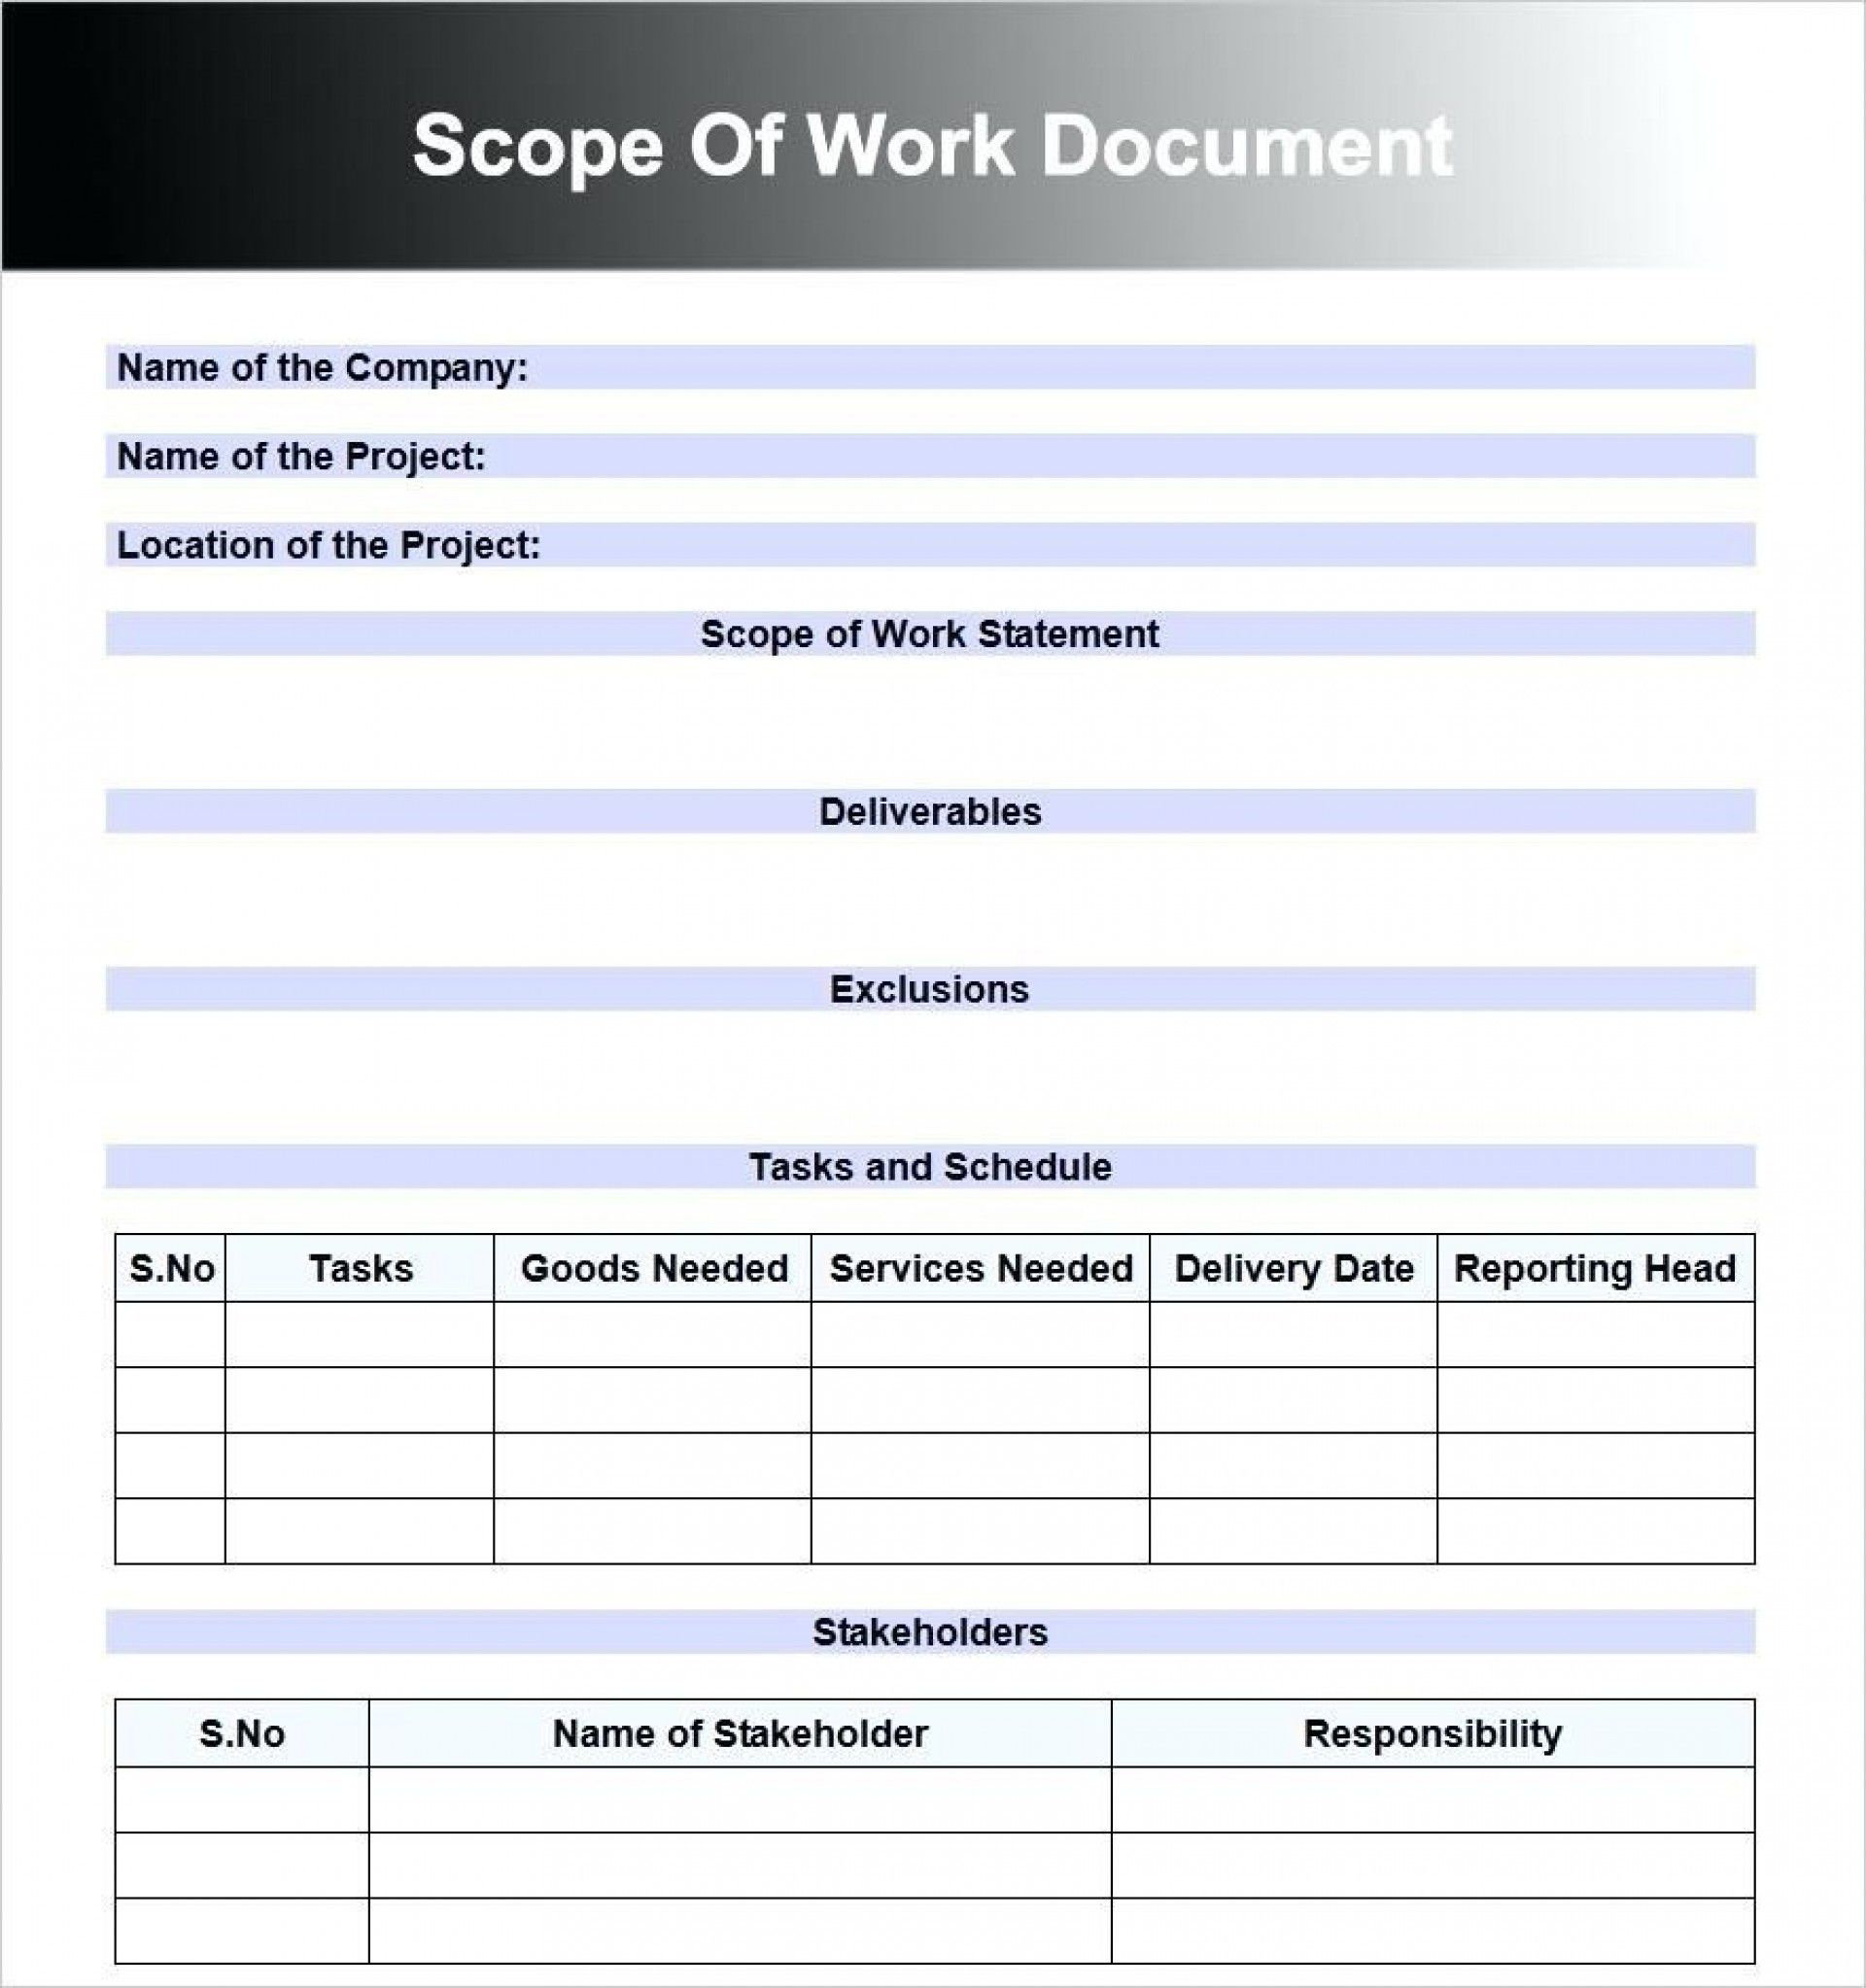 000 Best Construction Scope Of Work Template Word Highest Clarity Full